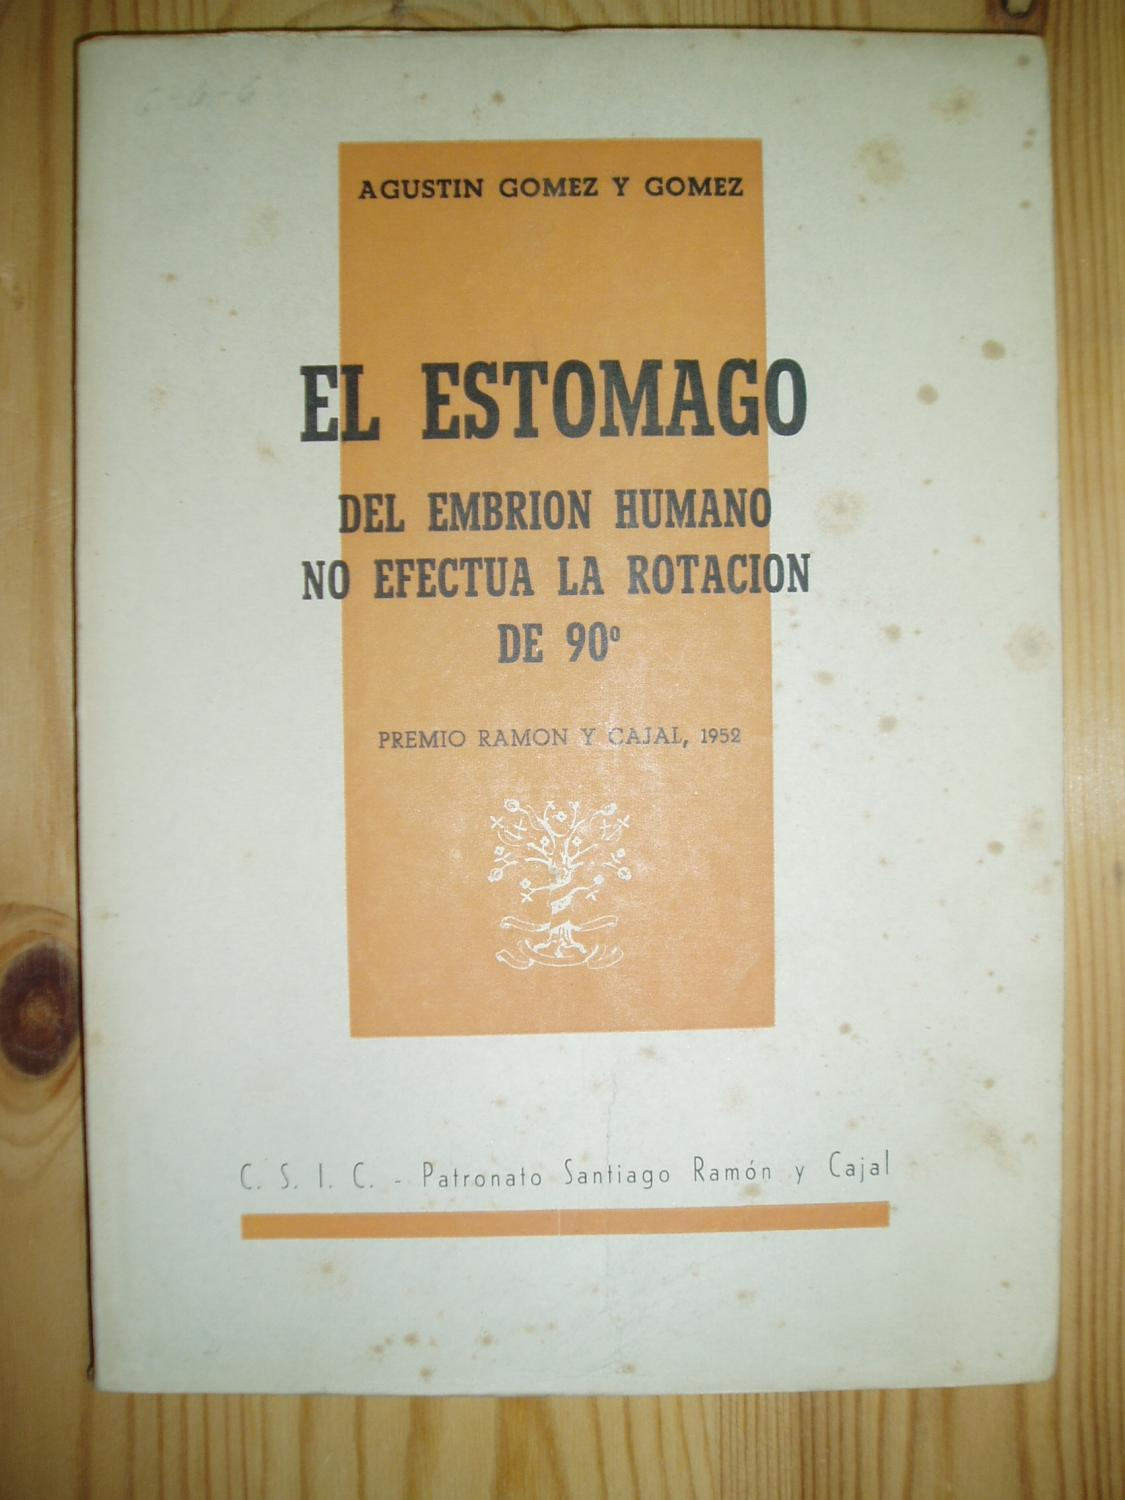 El estomago del embrion humano no efectua la rotacion de 90\' by ...